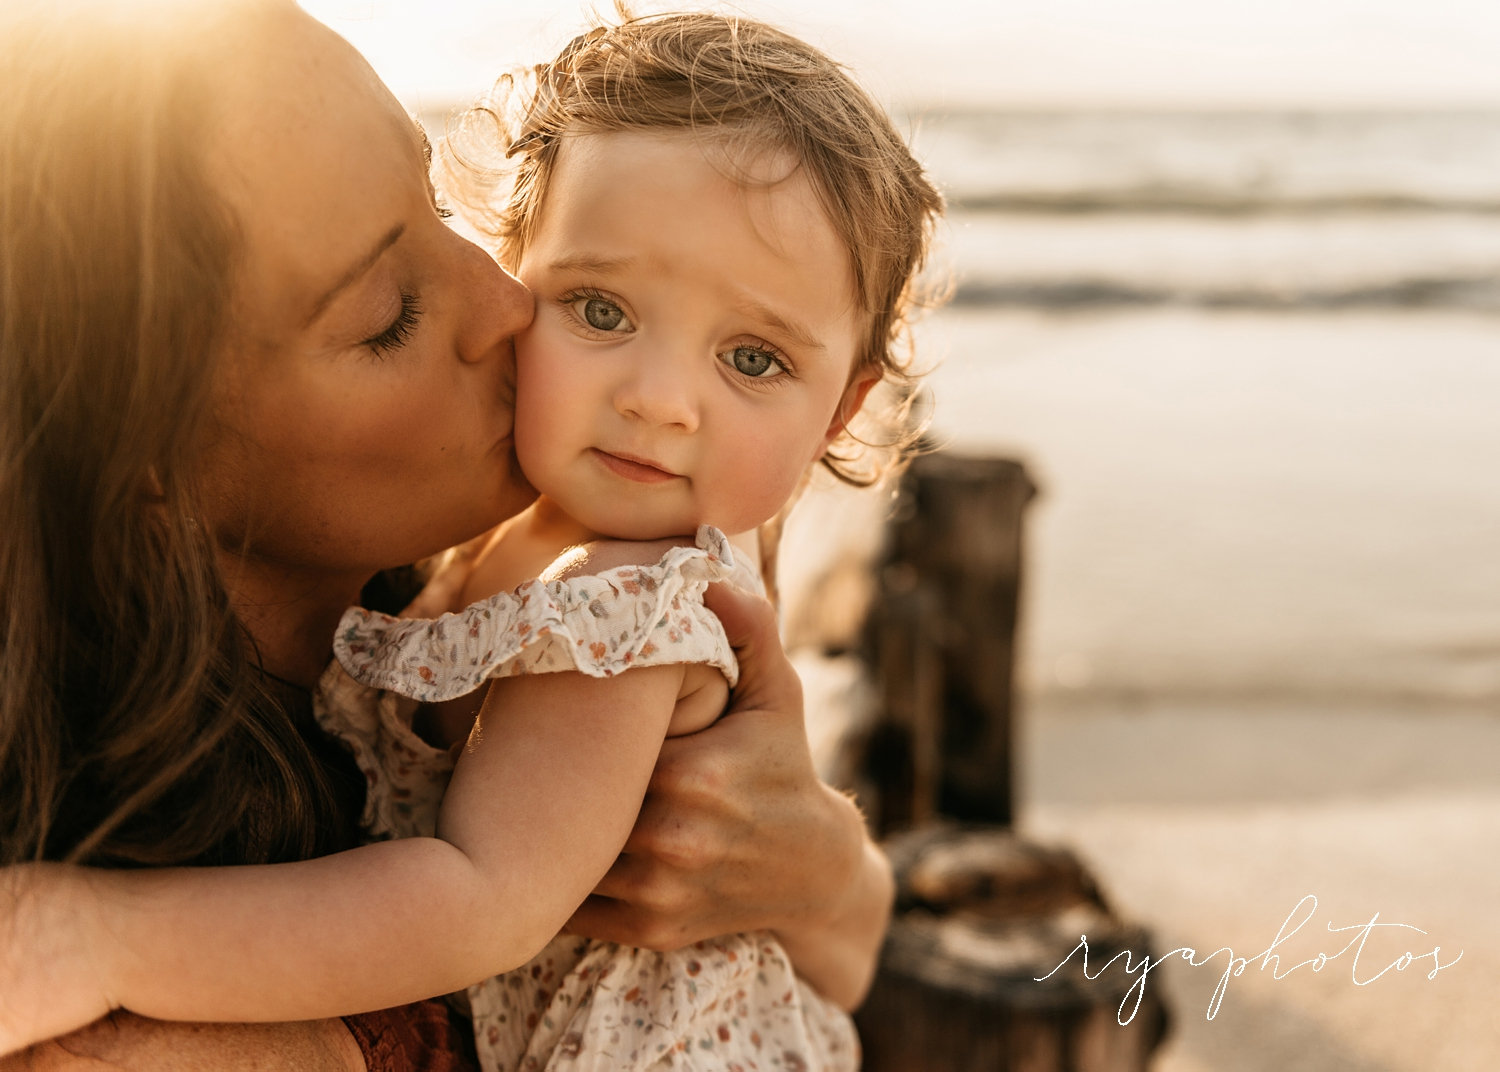 mother kissing baby daughter, baby girl with big blue eyes, sun flare, Rya Duncklee